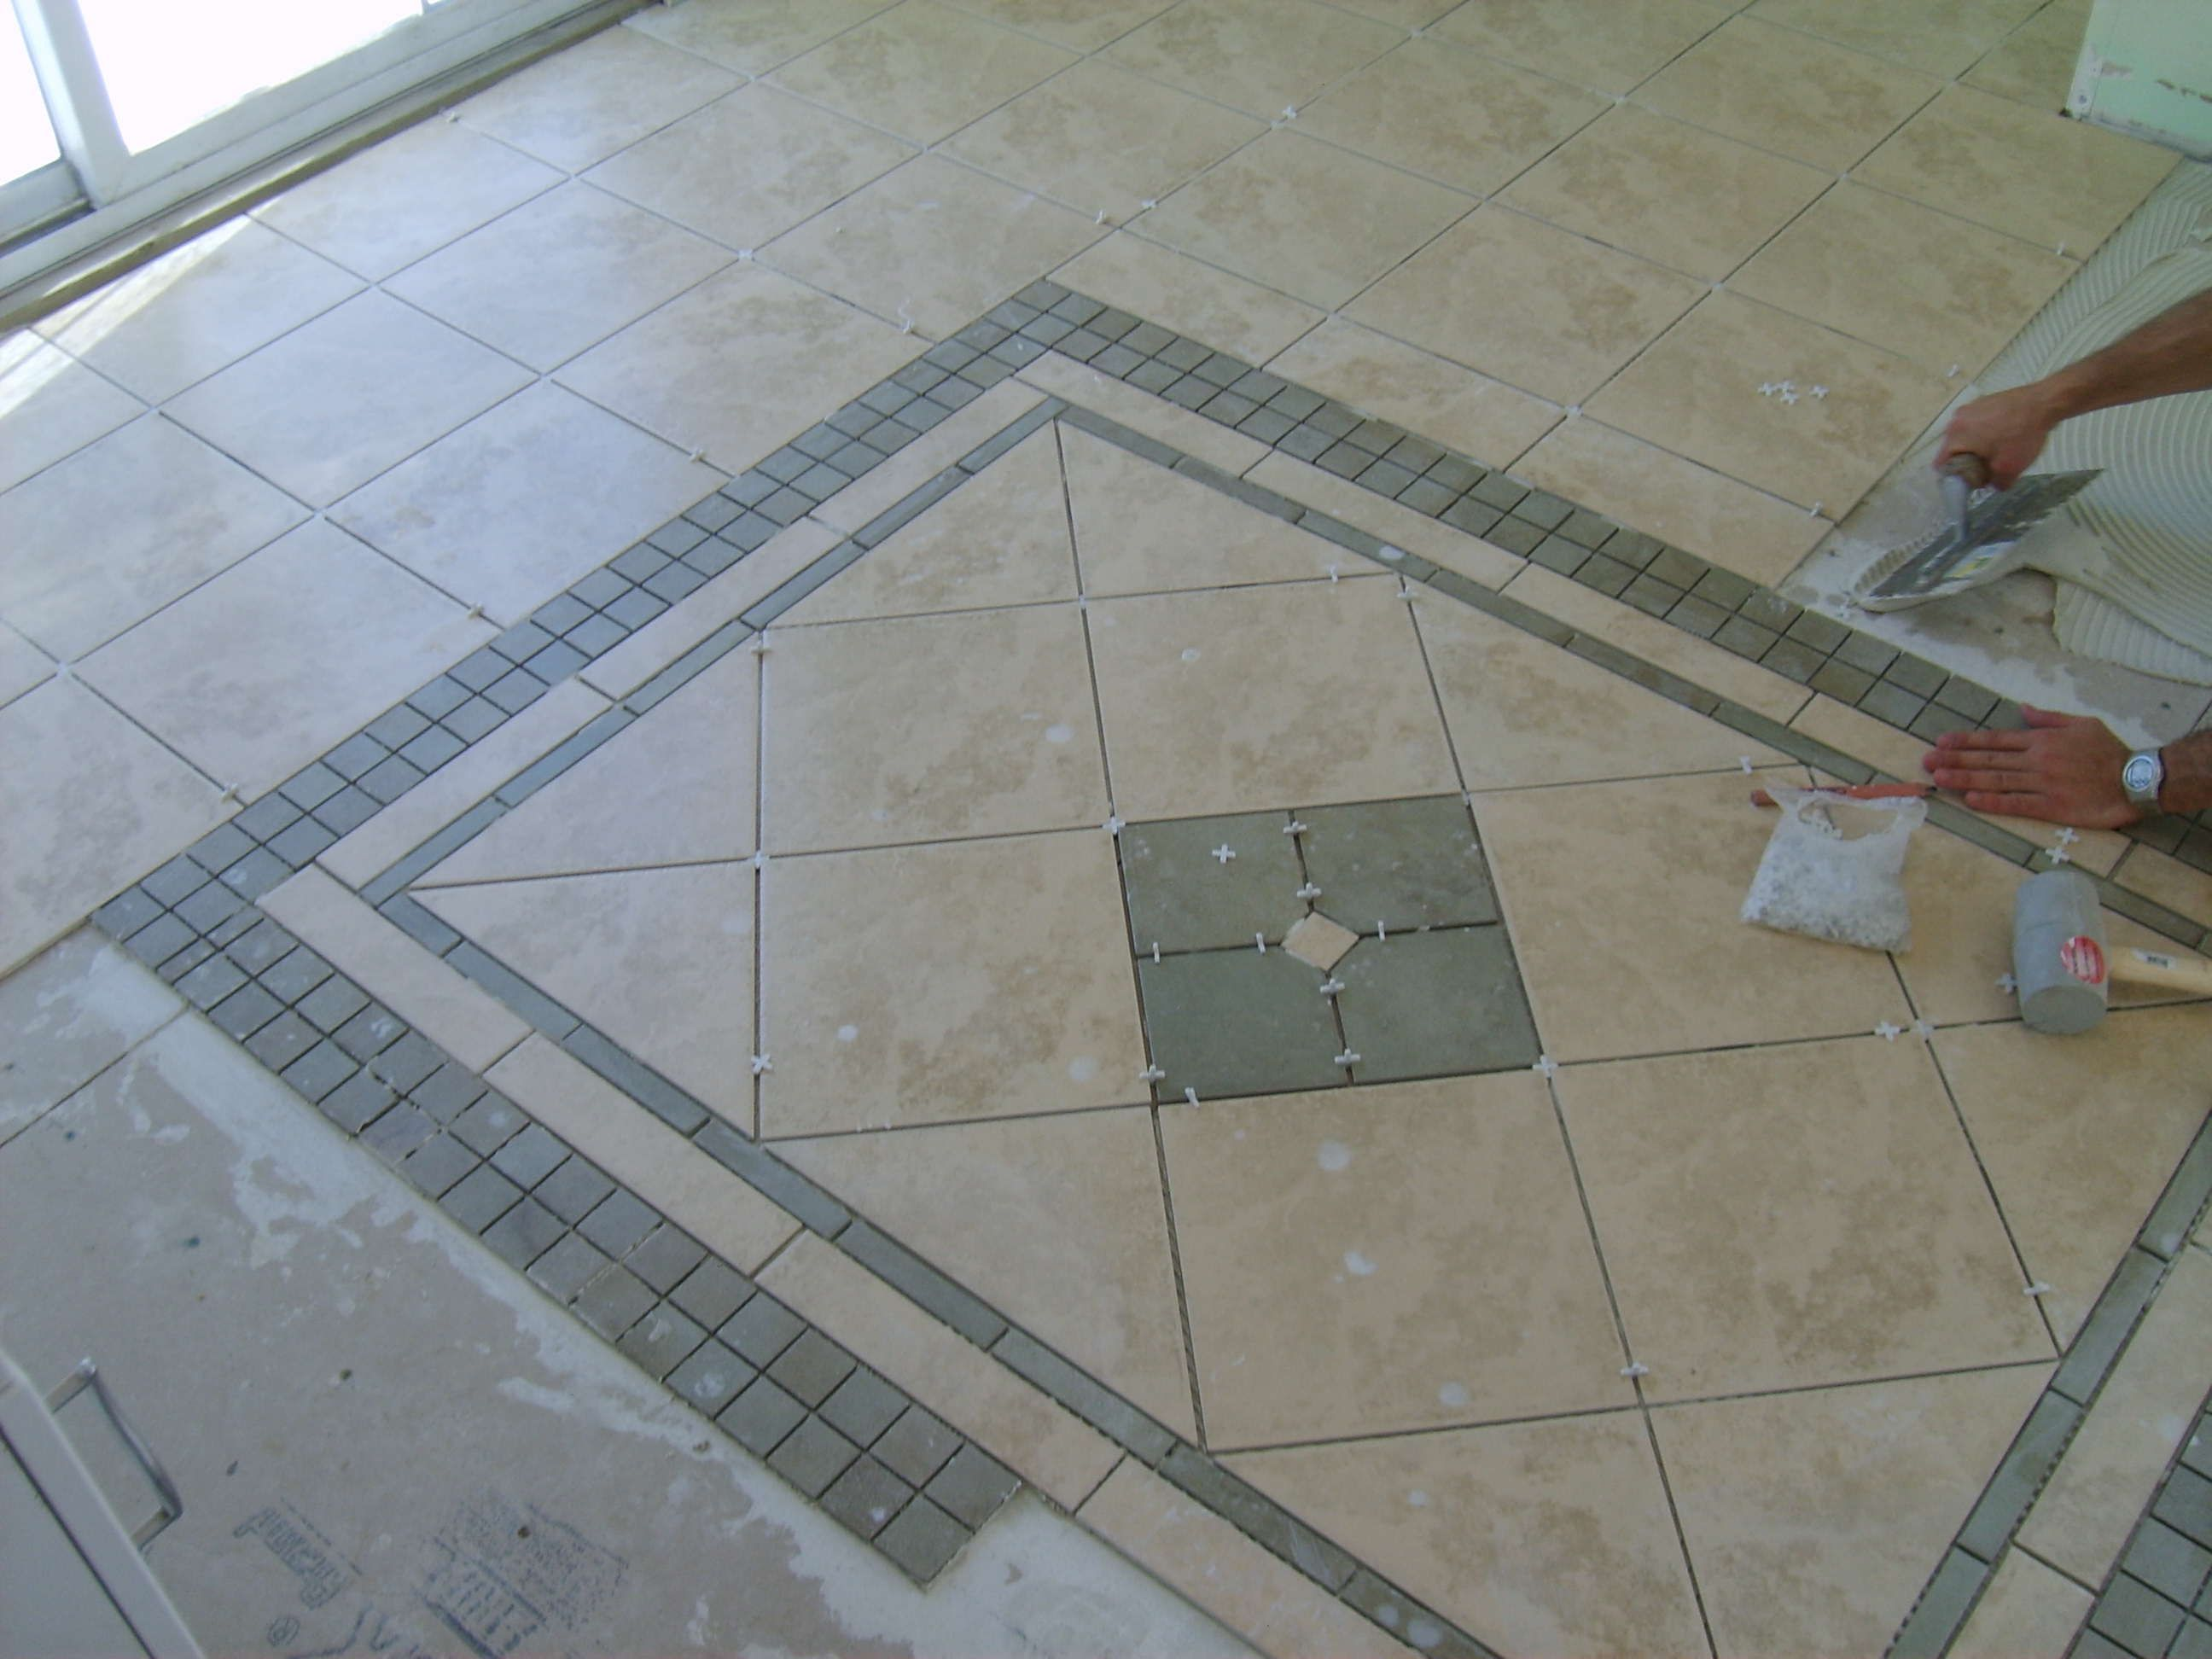 best images about tile floors on pinterest limestone flooring living room floor tiles design tile